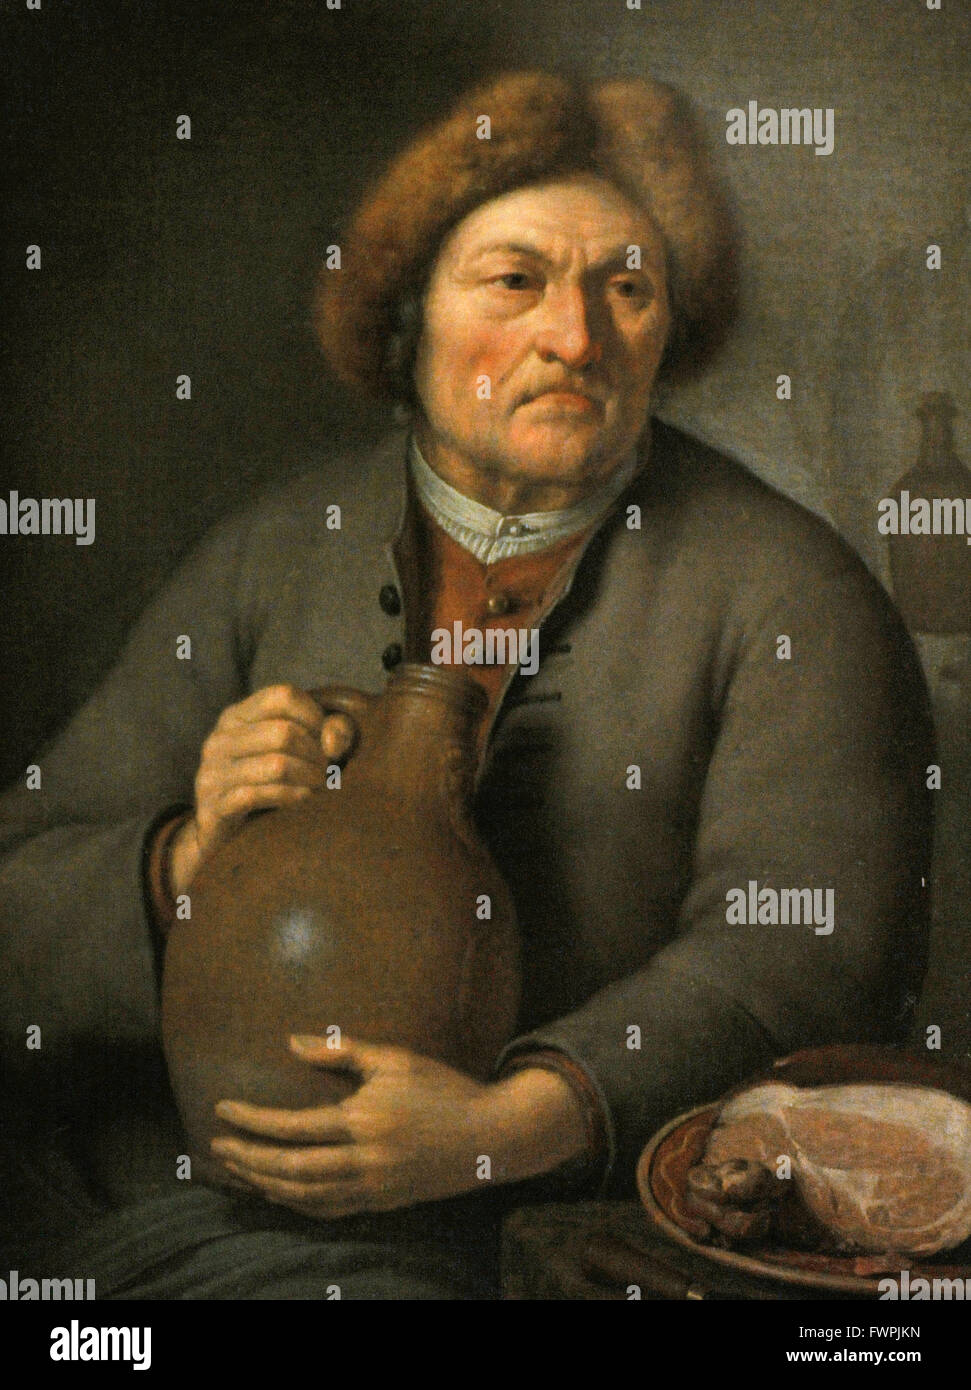 Frans van Mieris the Younger 1689-1763). Dutch baroque painter. Old Peasant Holding a Jug, 1731. The State Hermitage - Stock Image